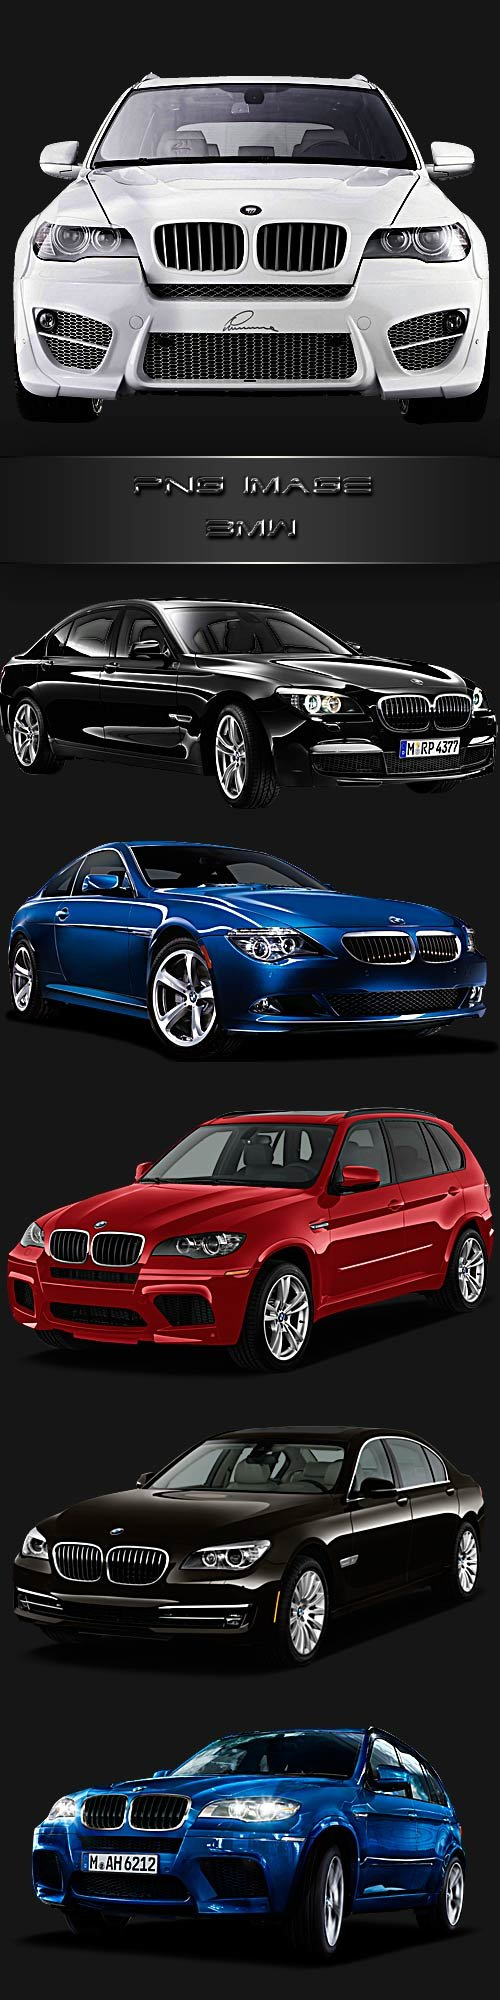 BMW clipart psd Photoshop PNG Download BMW Psd